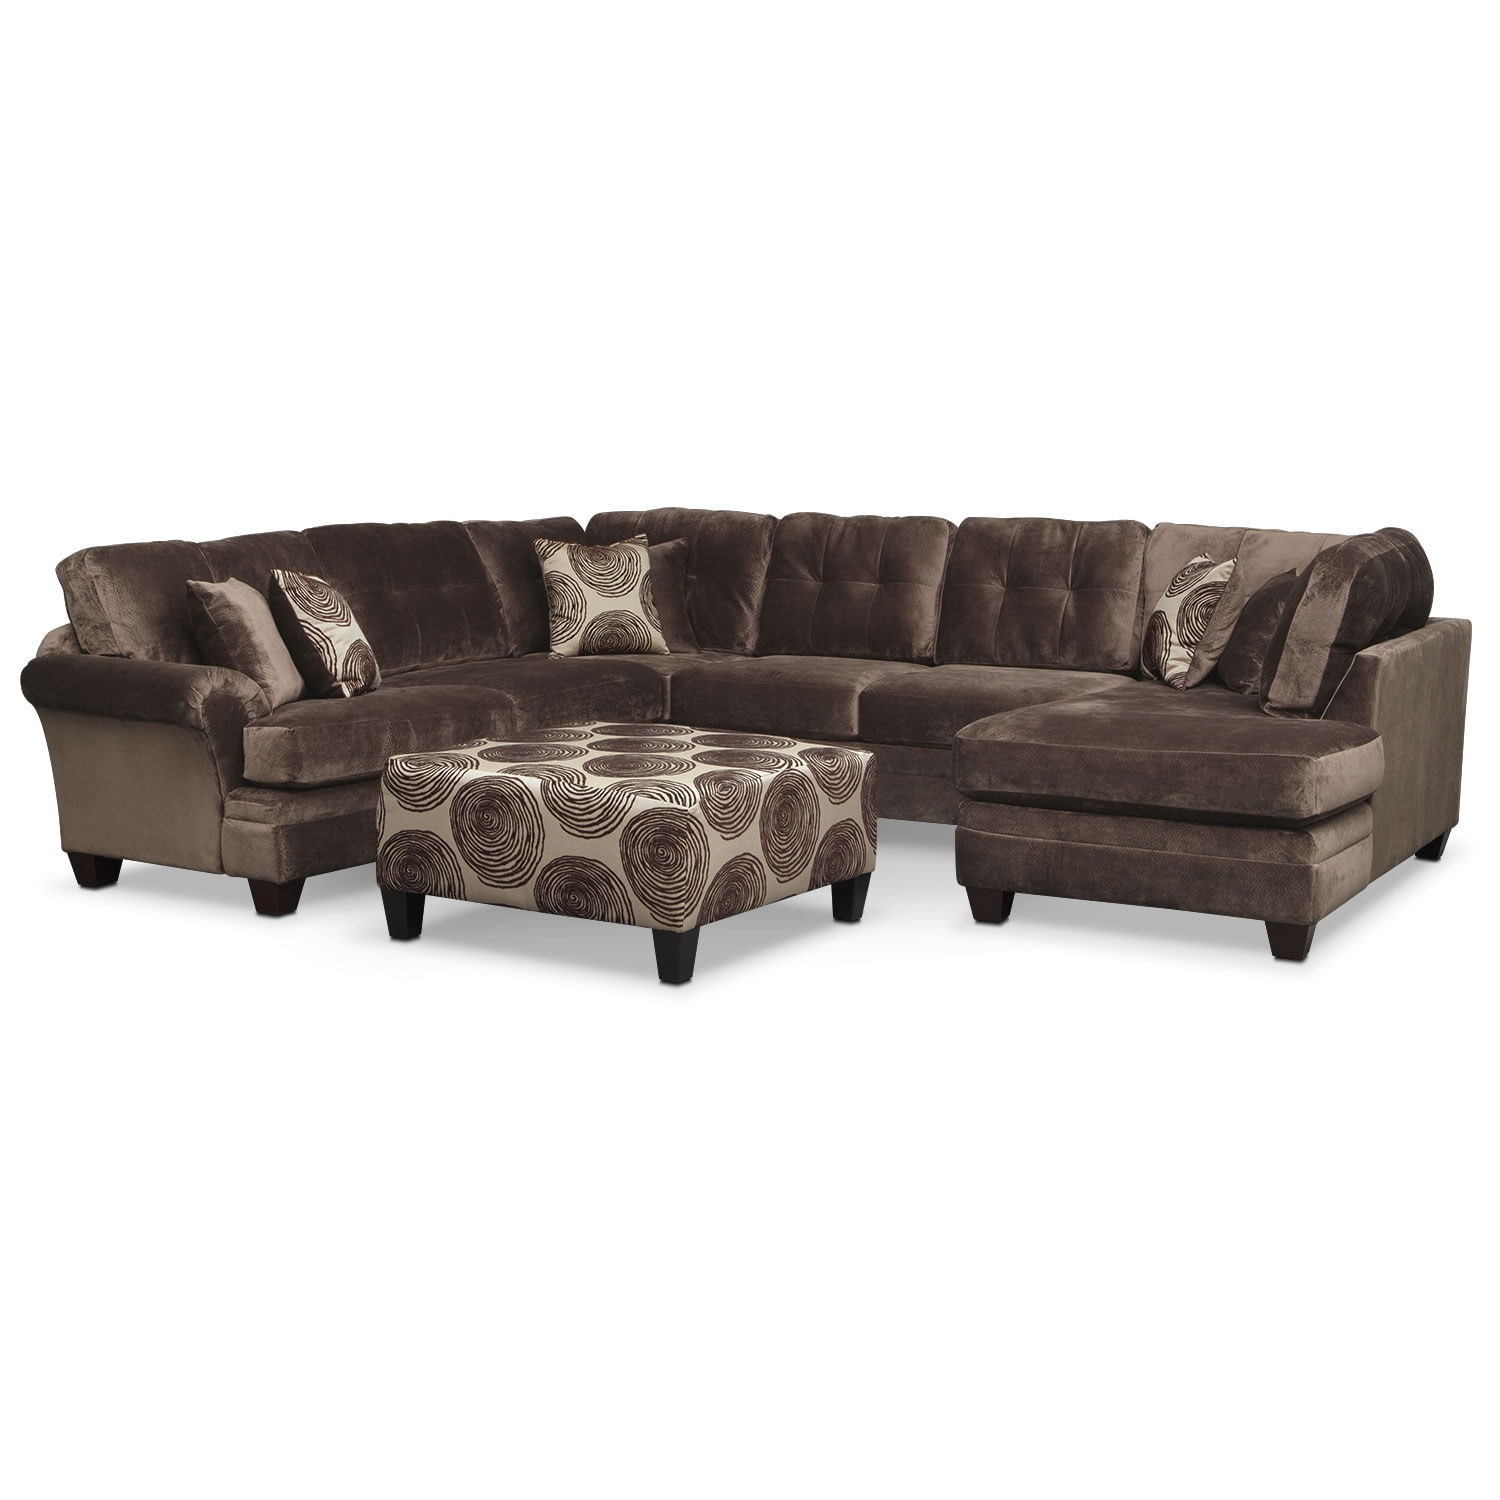 Cordelle 3 Piece Sectional And Cocktail Ottoman Set   Chocolate Part 81